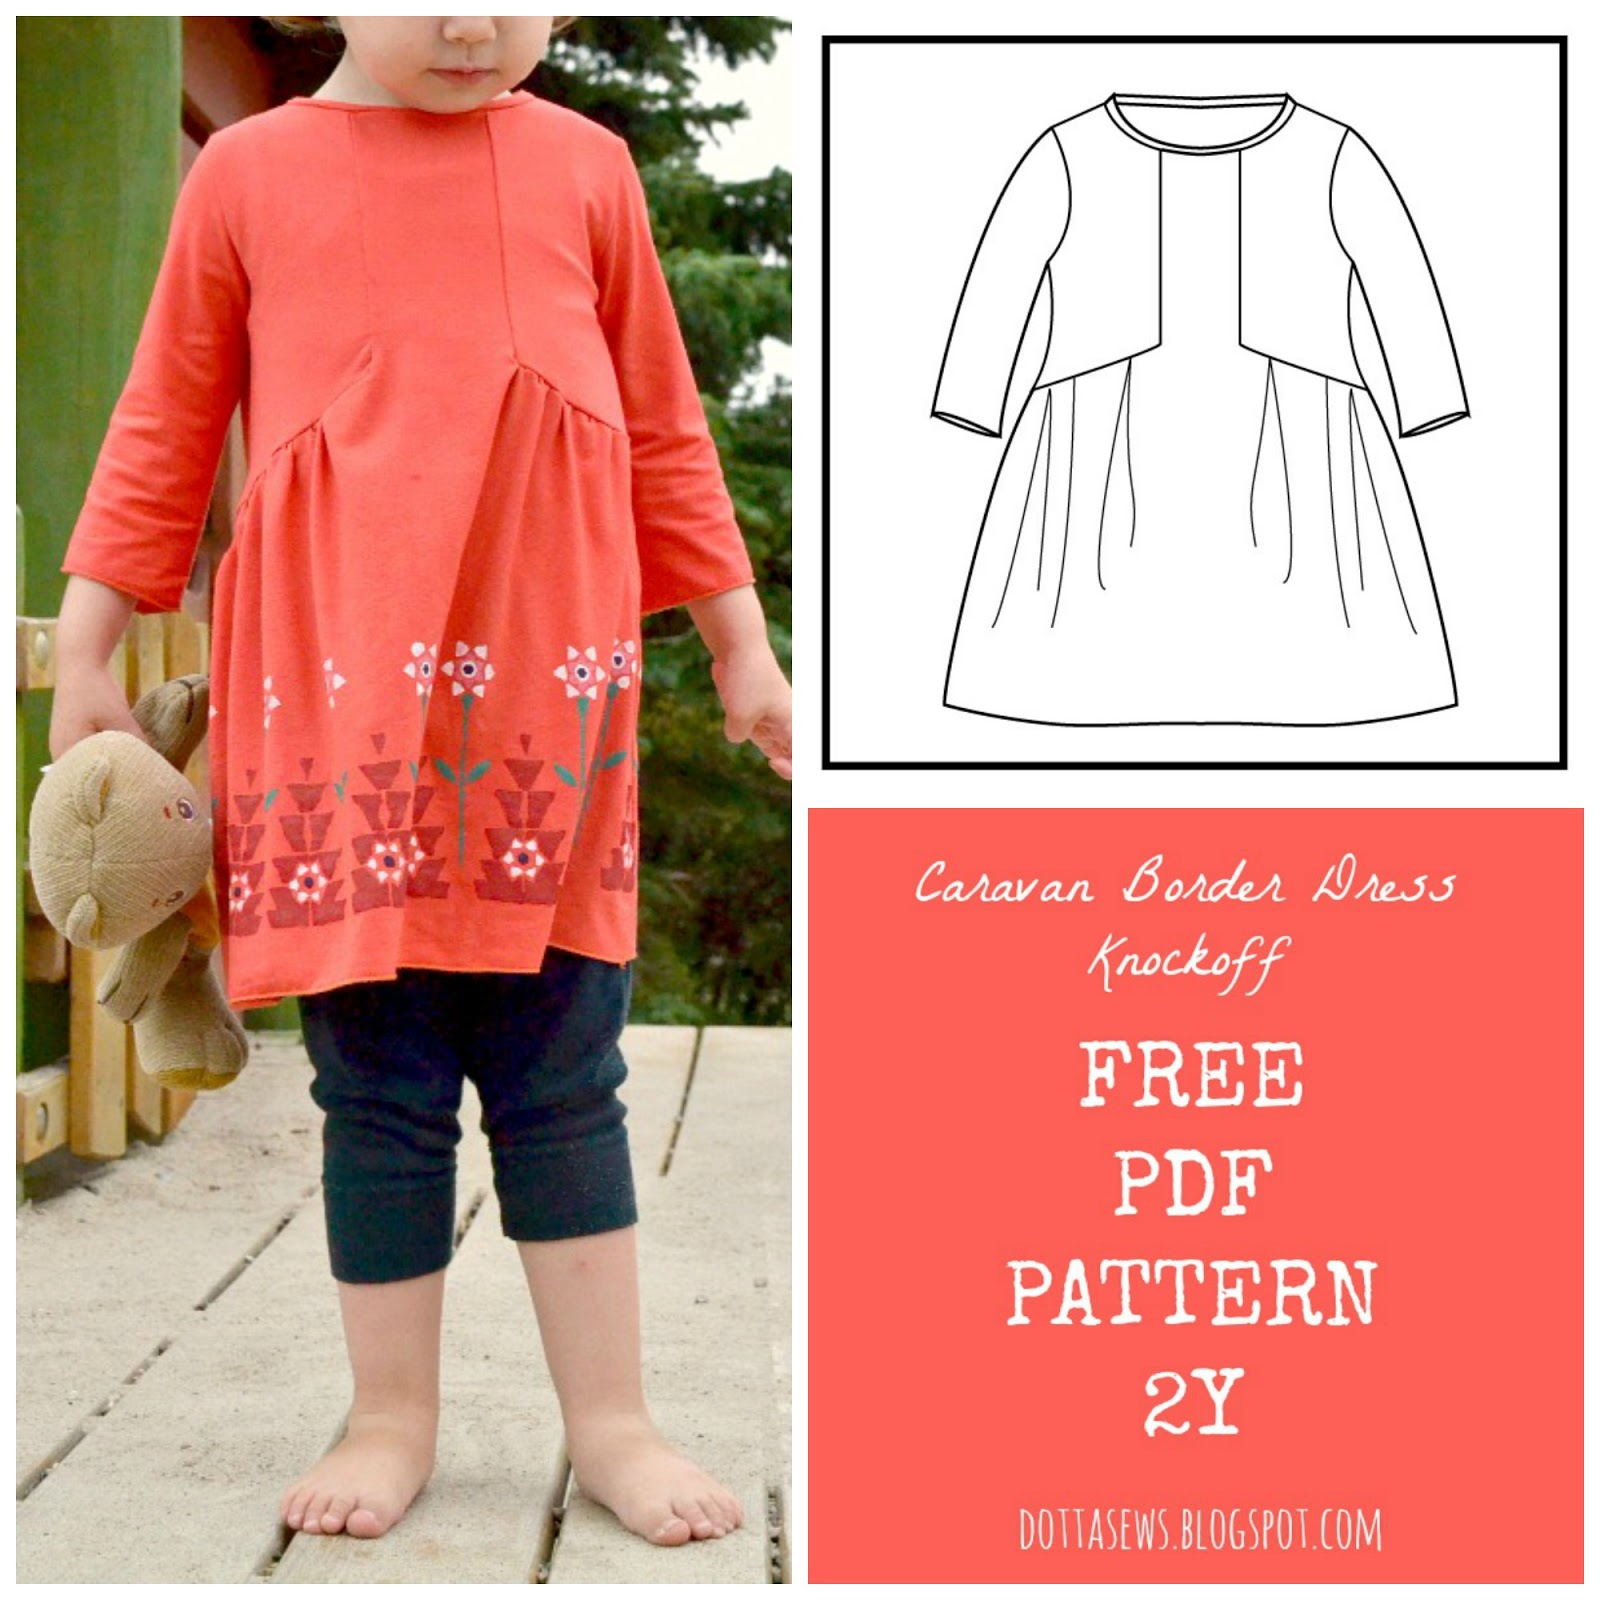 Caravan Border Dress Knockoff FREE PDF Pattern